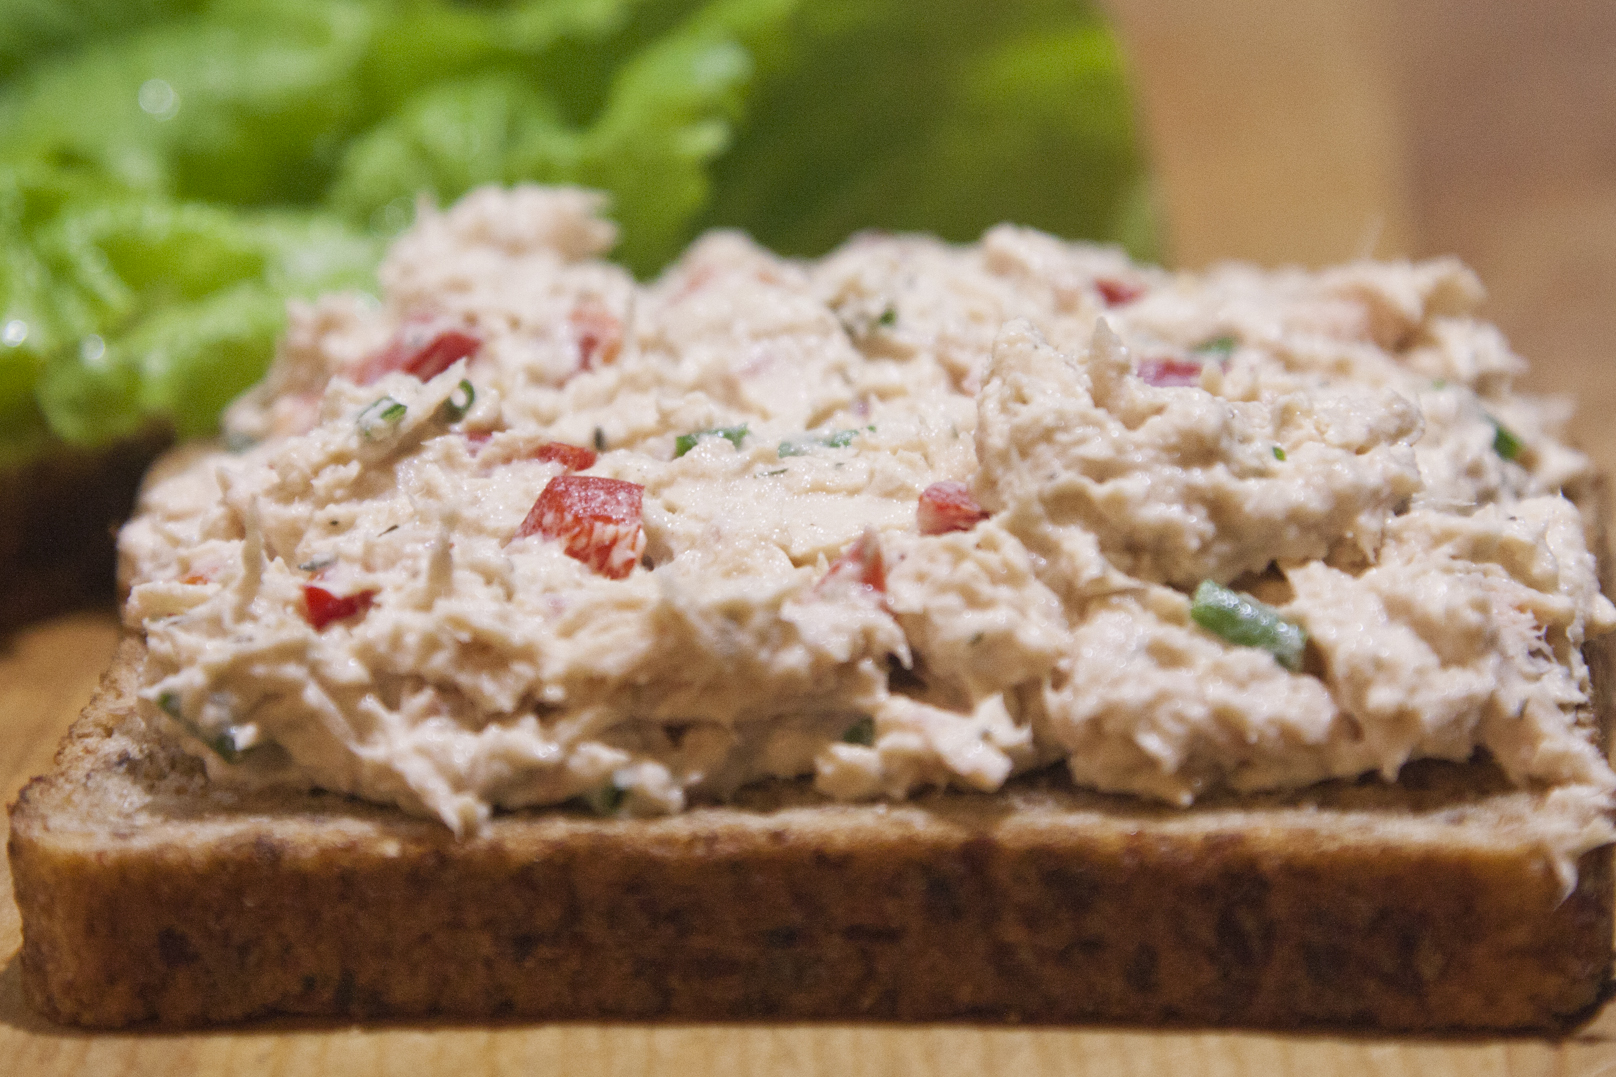 Tuna Salad Sandwich - Our Nutrition Kitchen.com